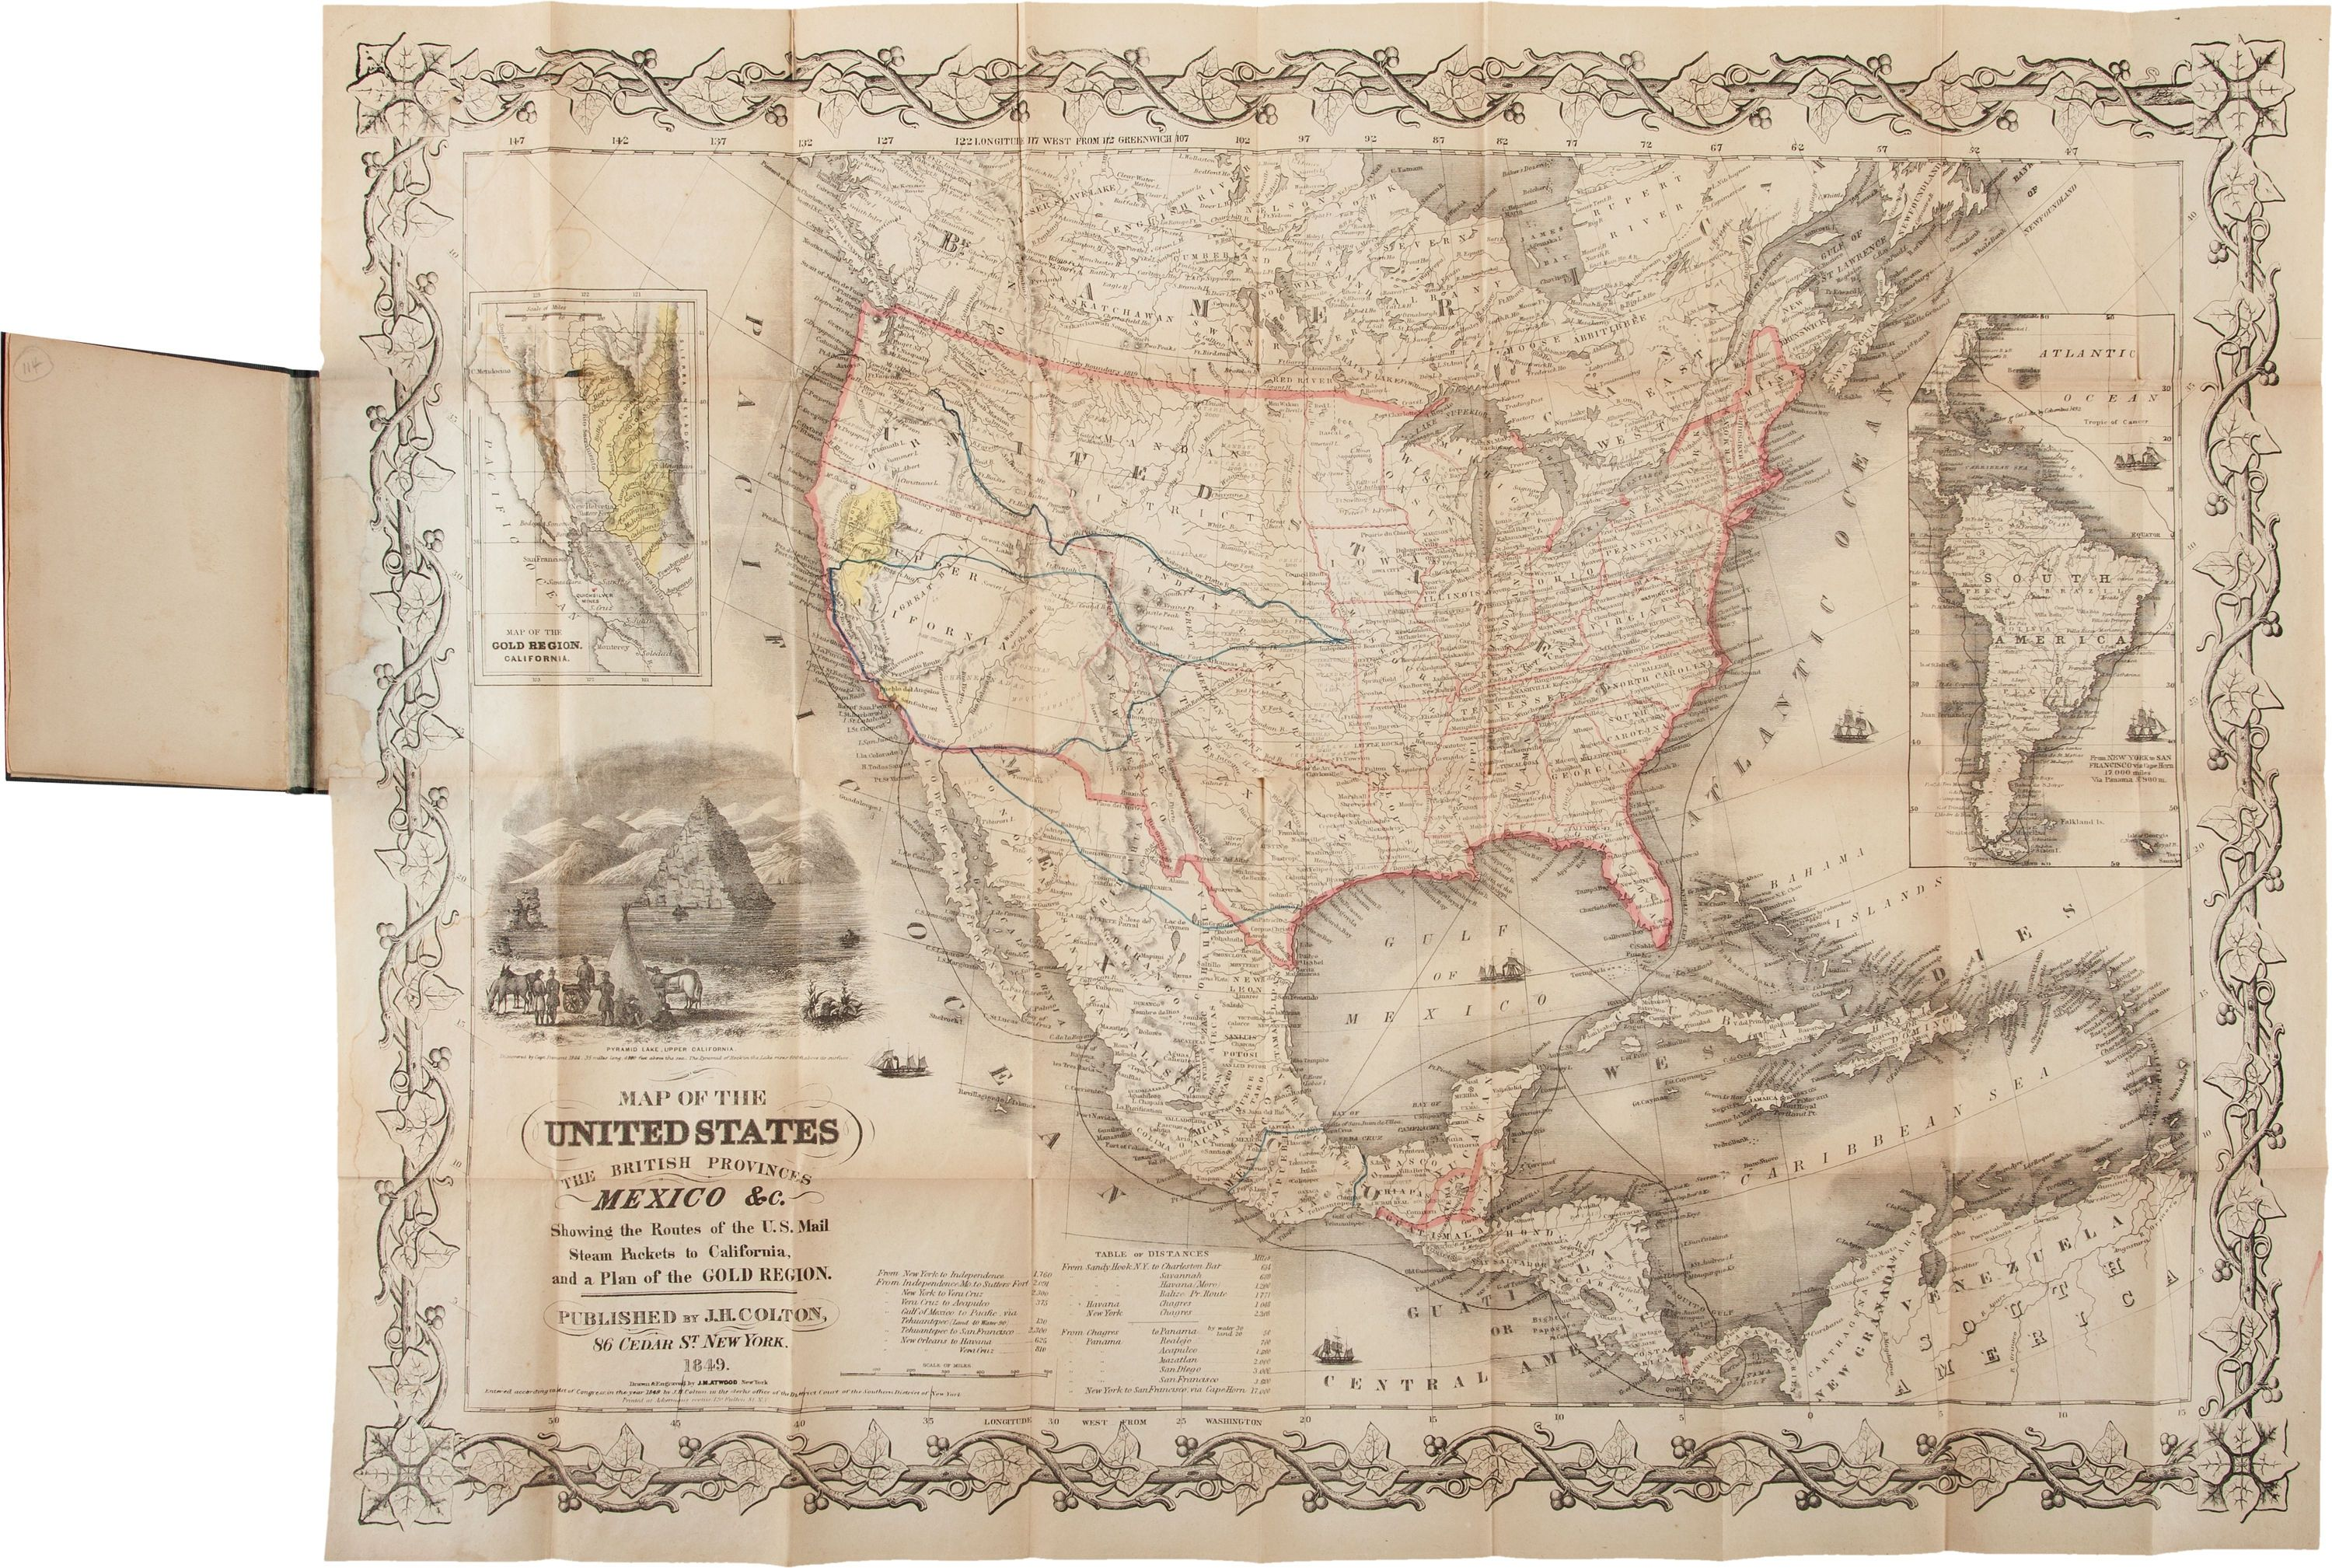 Map Of The United States The British Provinces Mexico C Showing